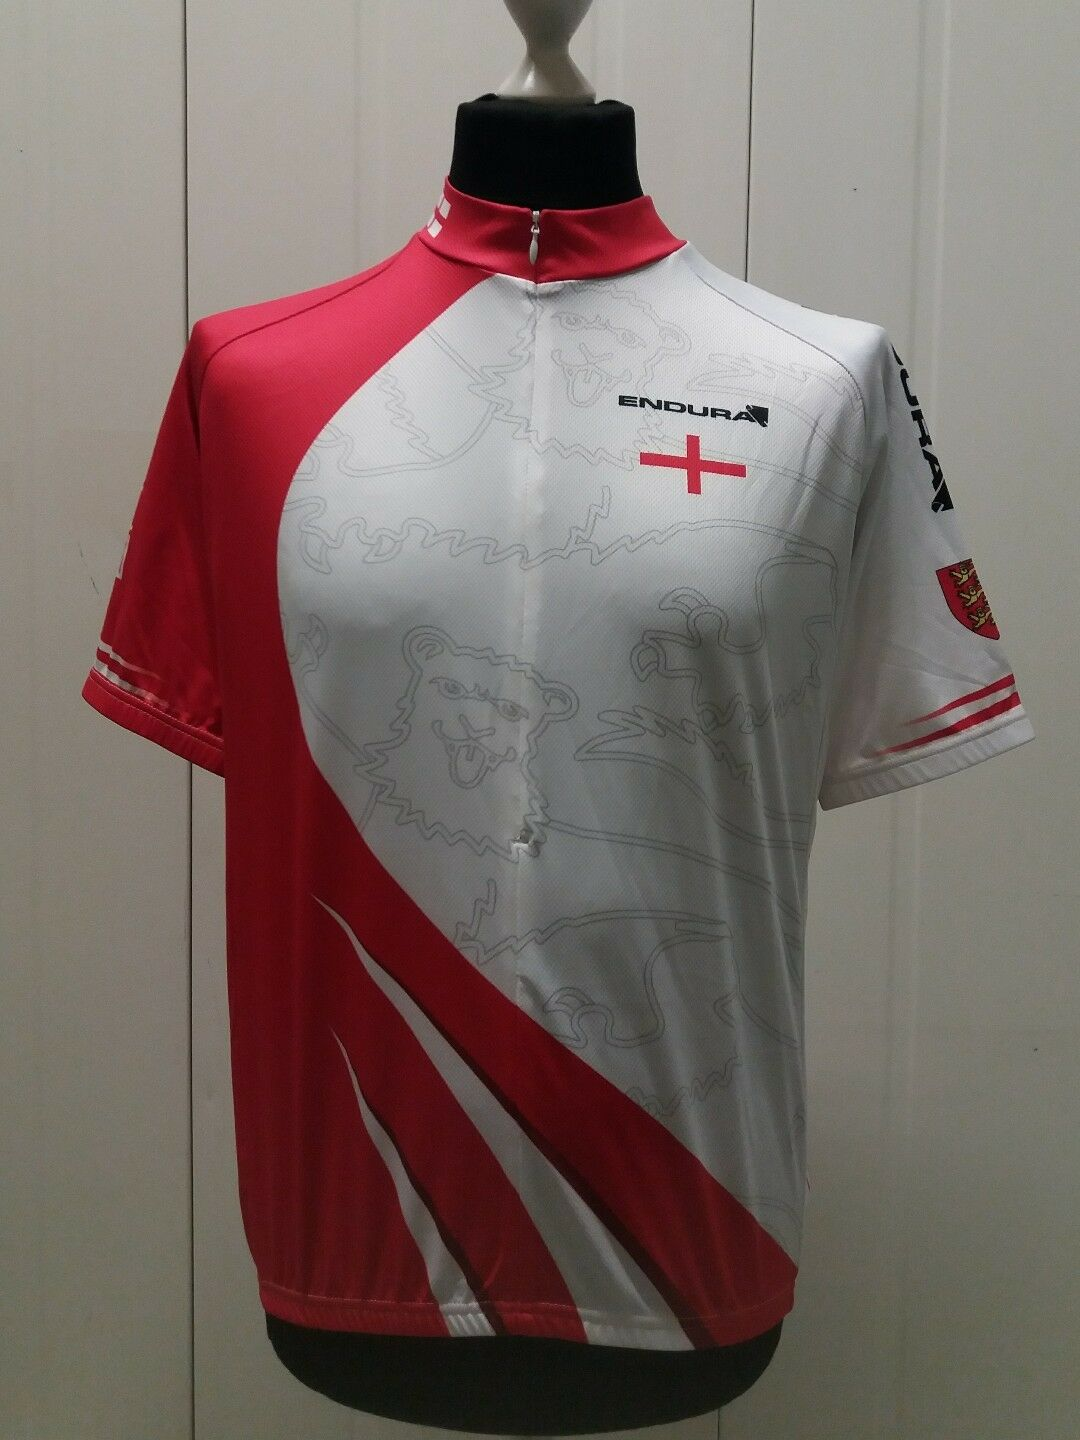 New  Endura England Flag Coolmax S S Cycling Jersey L  10 days return